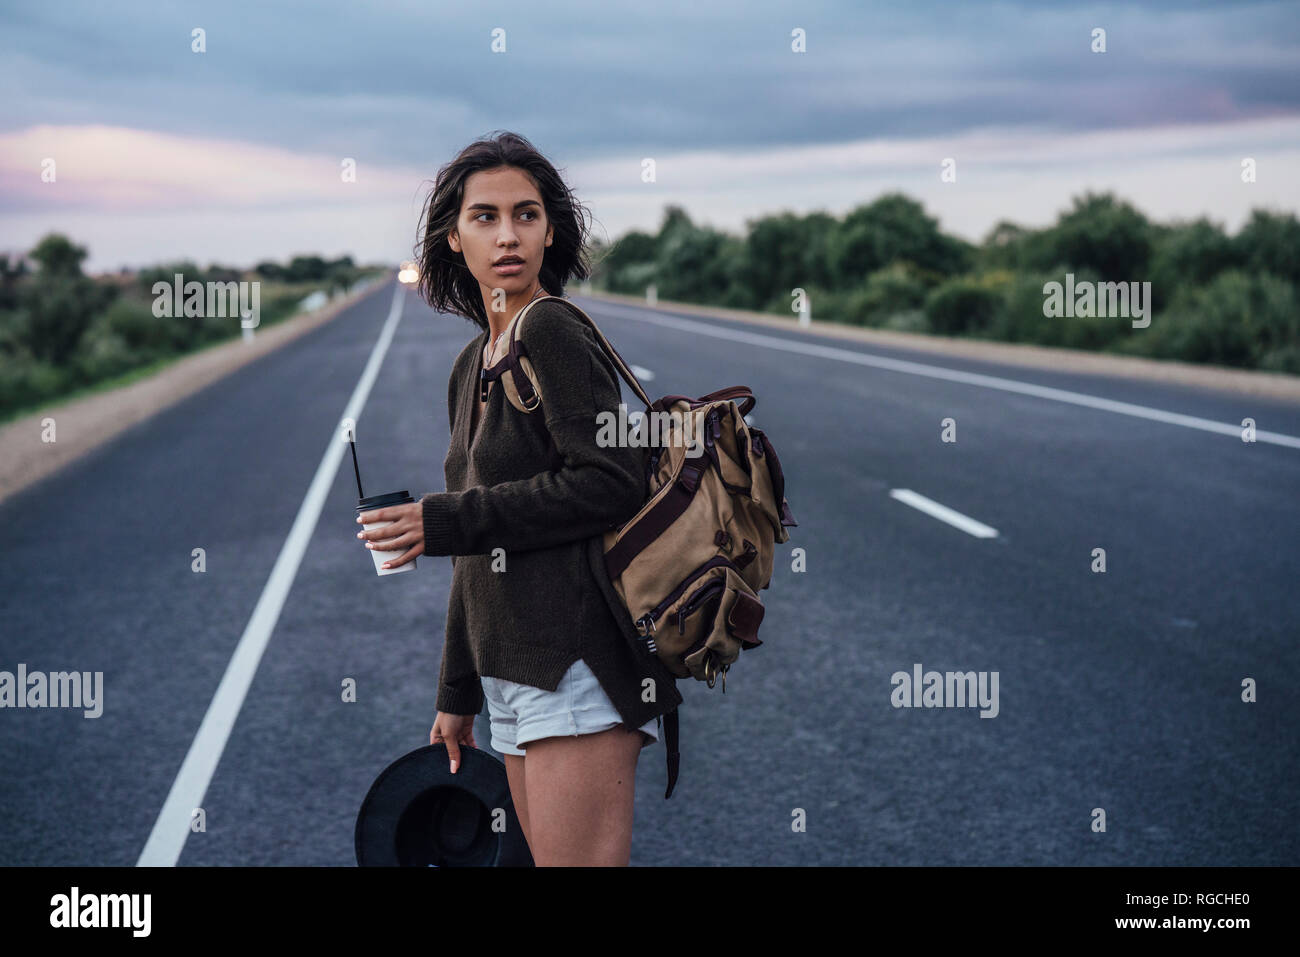 Portrait of young hitchhiking woman with backpack and beverage standing on lane Stock Photo